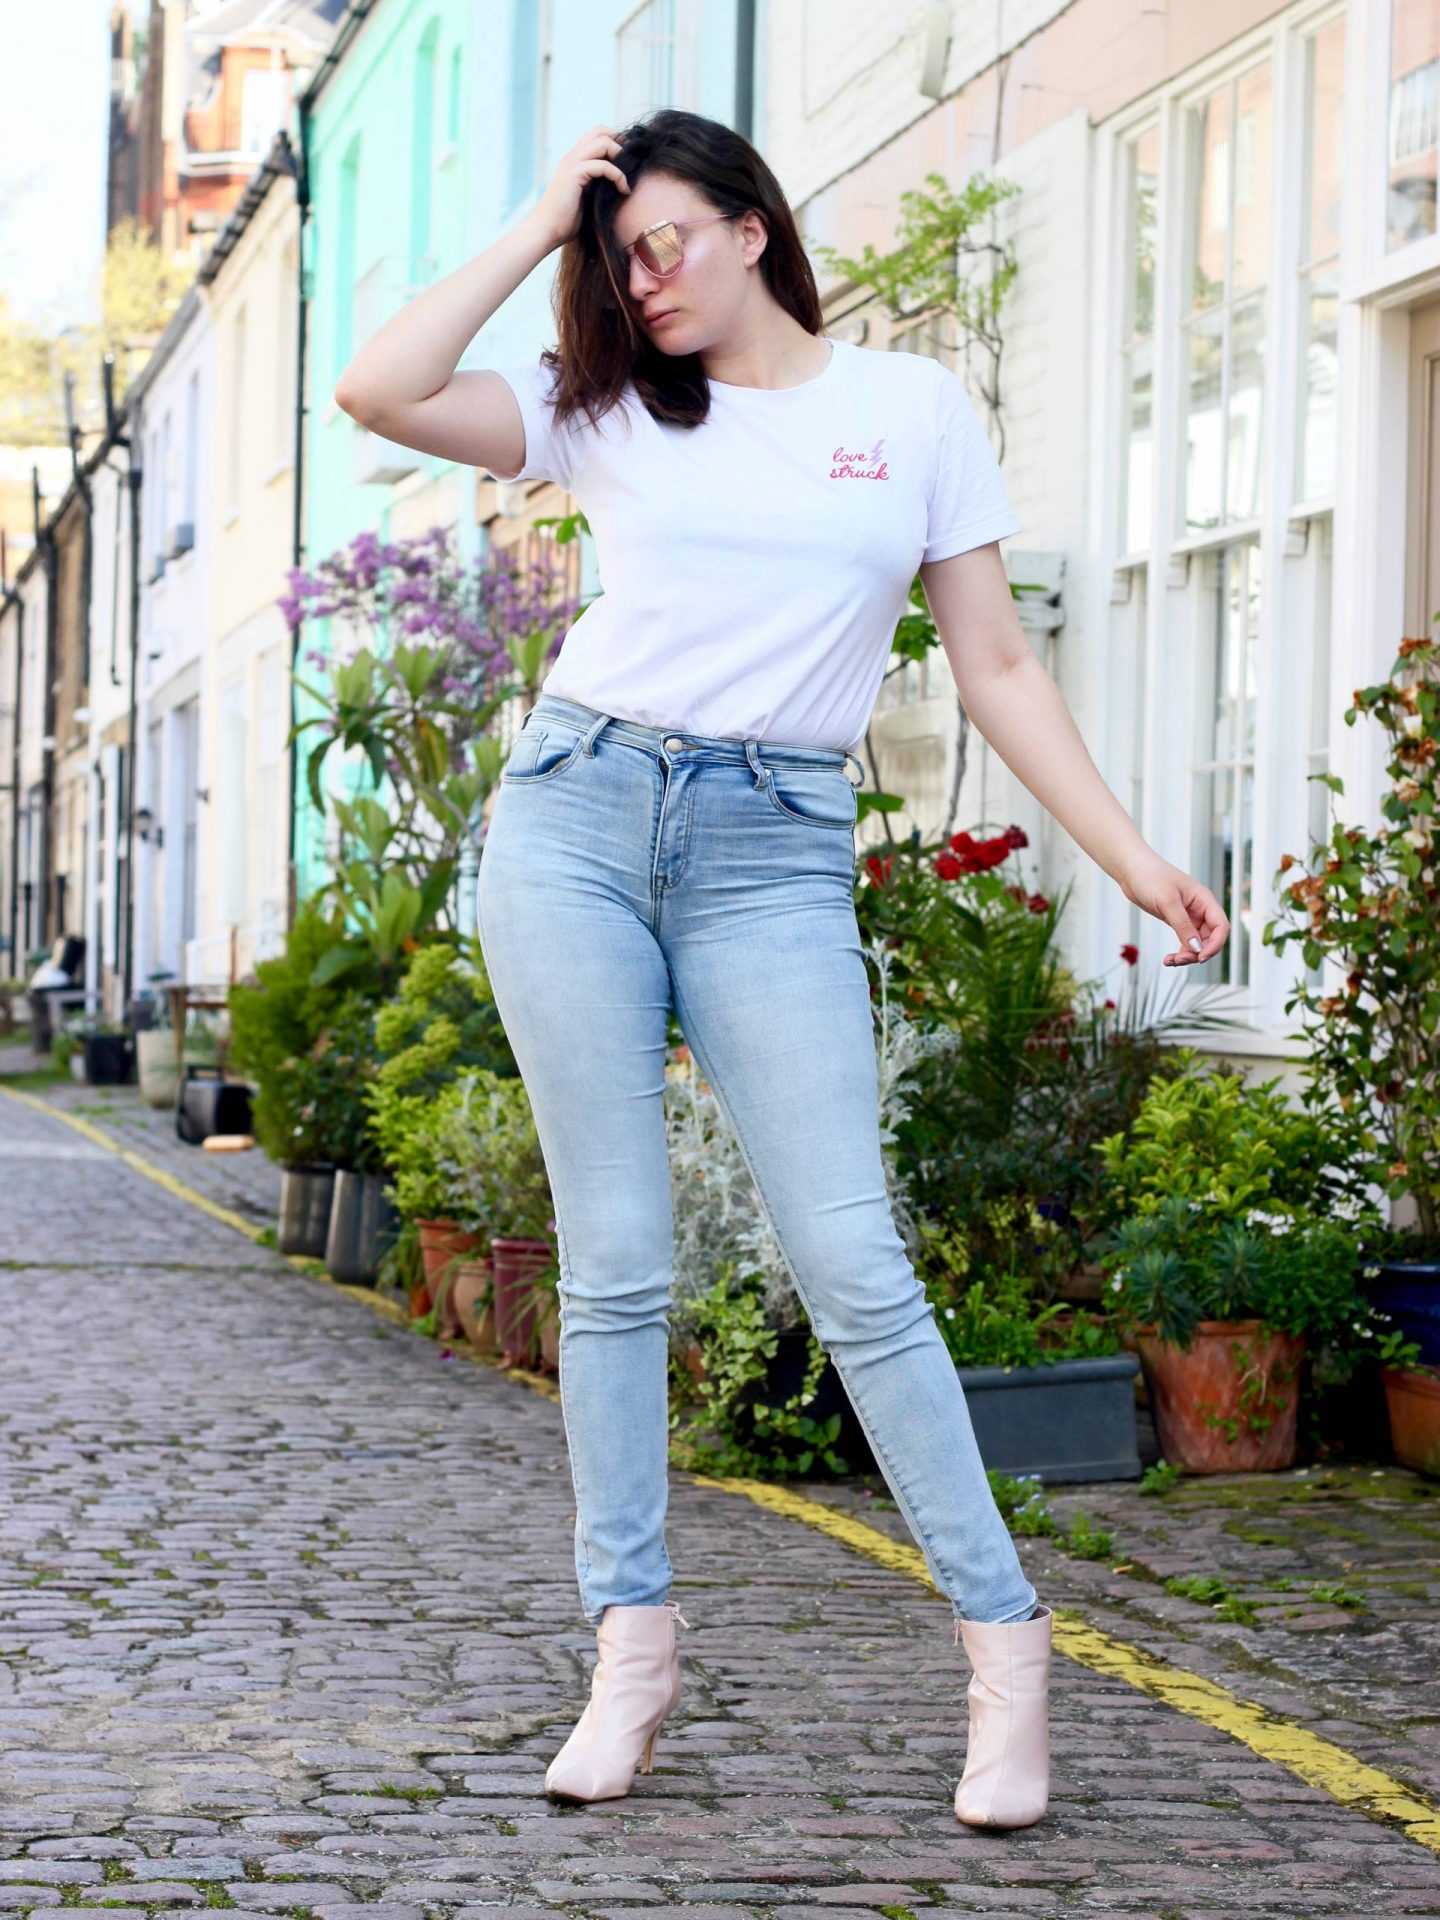 Primark spring outfit London